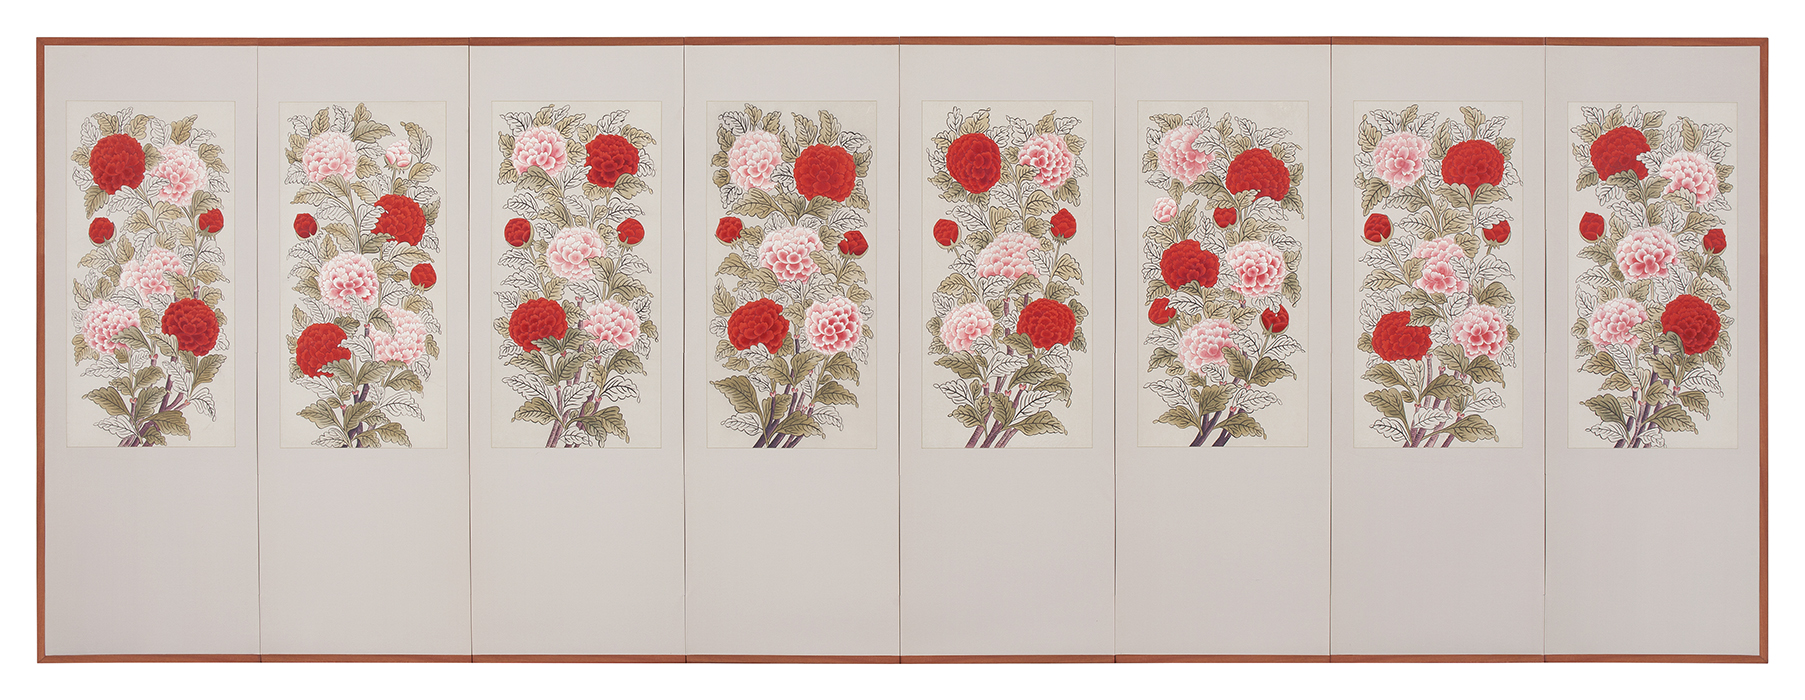 Peonies(Morando), 2012, Color on Korean paper, (42 x 86 cm) x 8panels